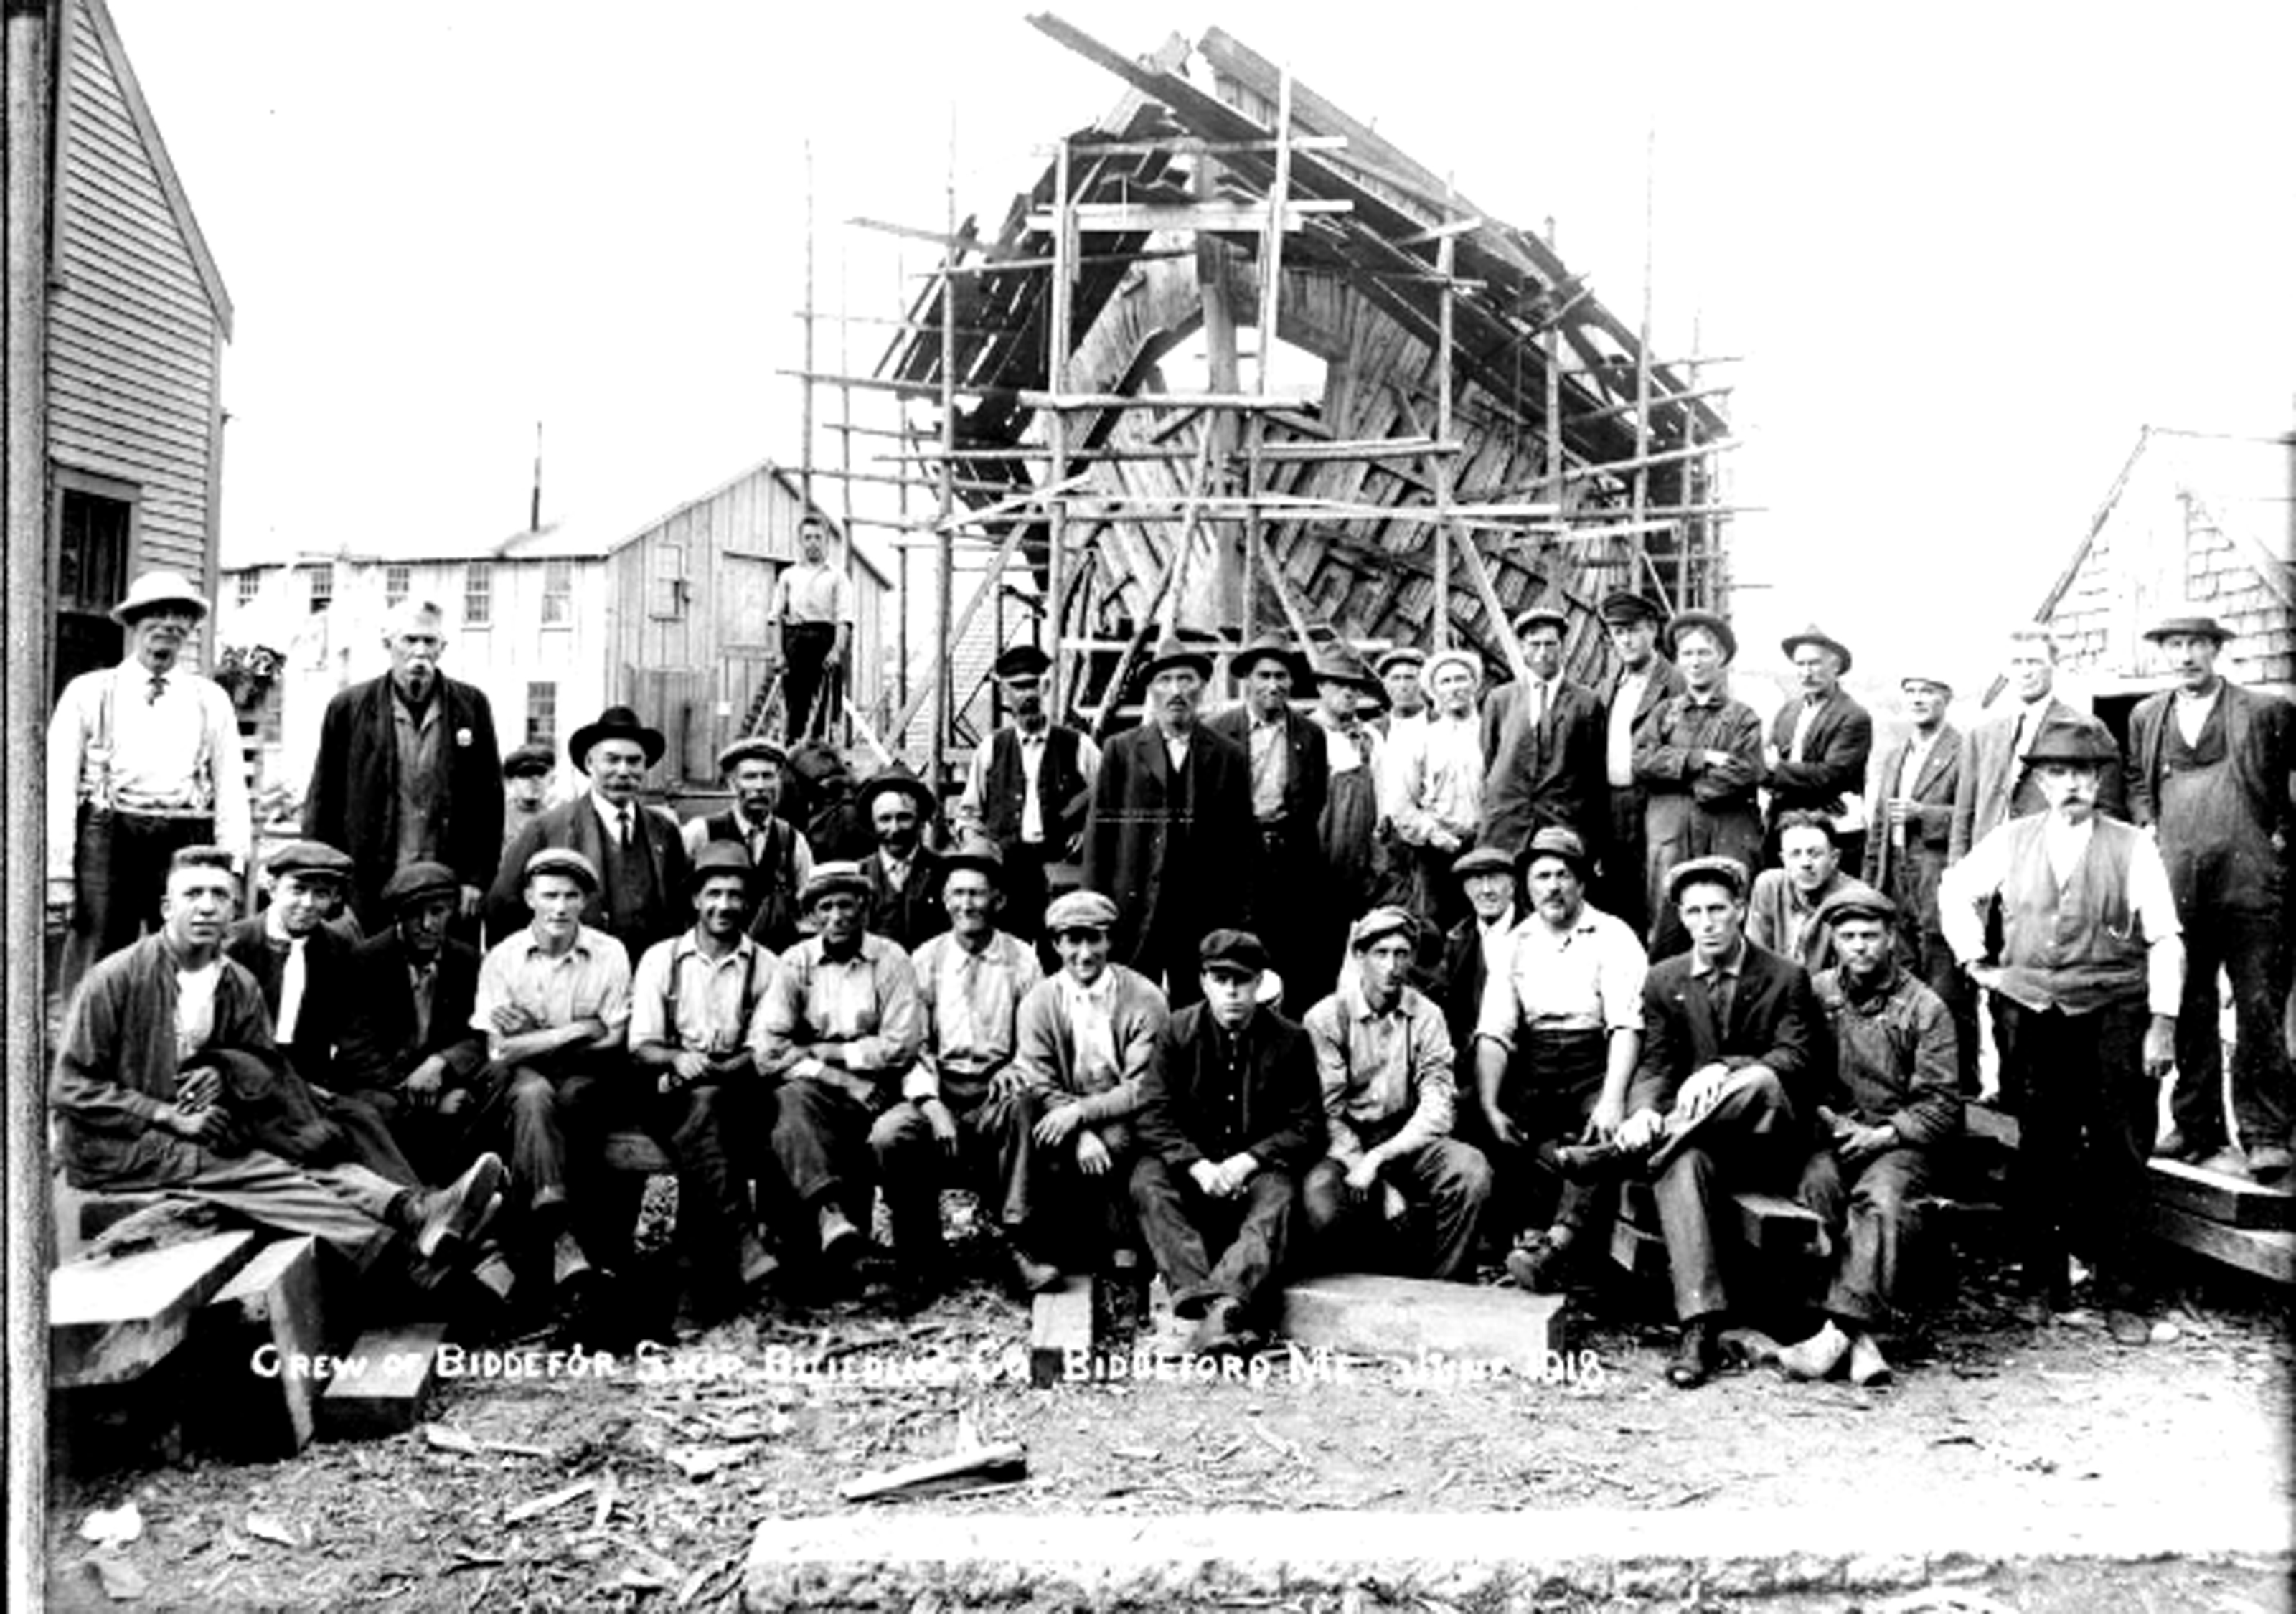 The crew of the Biddeford Shipbuilding Company gathers near the final ship produced by the business, the Jere G. Shaw, in Biddeford in 1918. COURTESY PHOTO/McArthur Public Library